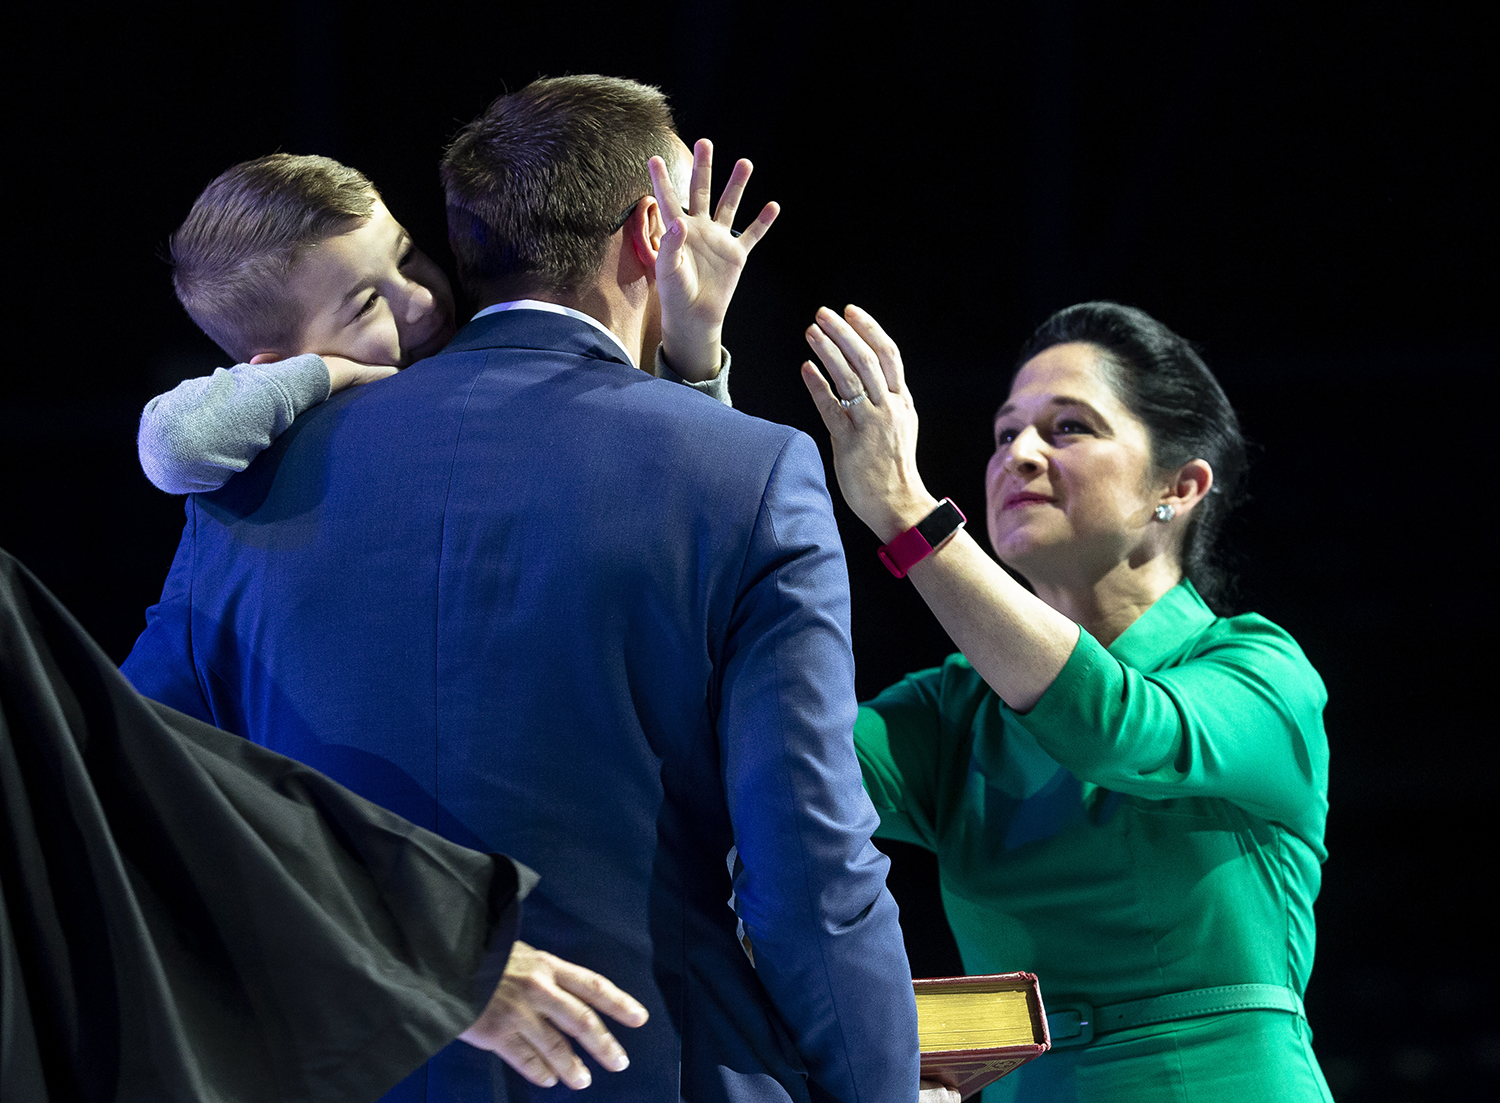 Comptroller Susana Mendoza reaches for her husband, David, who is holding their son, David, after she was sworn into office at the Illinois Inaugural Ceremony Monday, Jan. 14, 2019 a the Bank of Springfield Center in Springfield, Ill. [Rich Saal/The State Journal-Register]